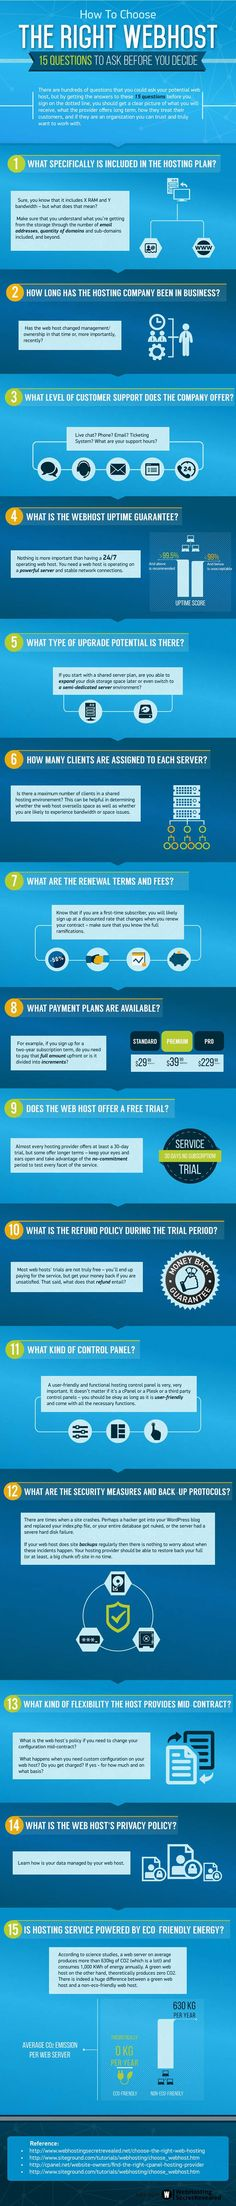 How To Choose The Right #WebHost For Your Website? #Infographic